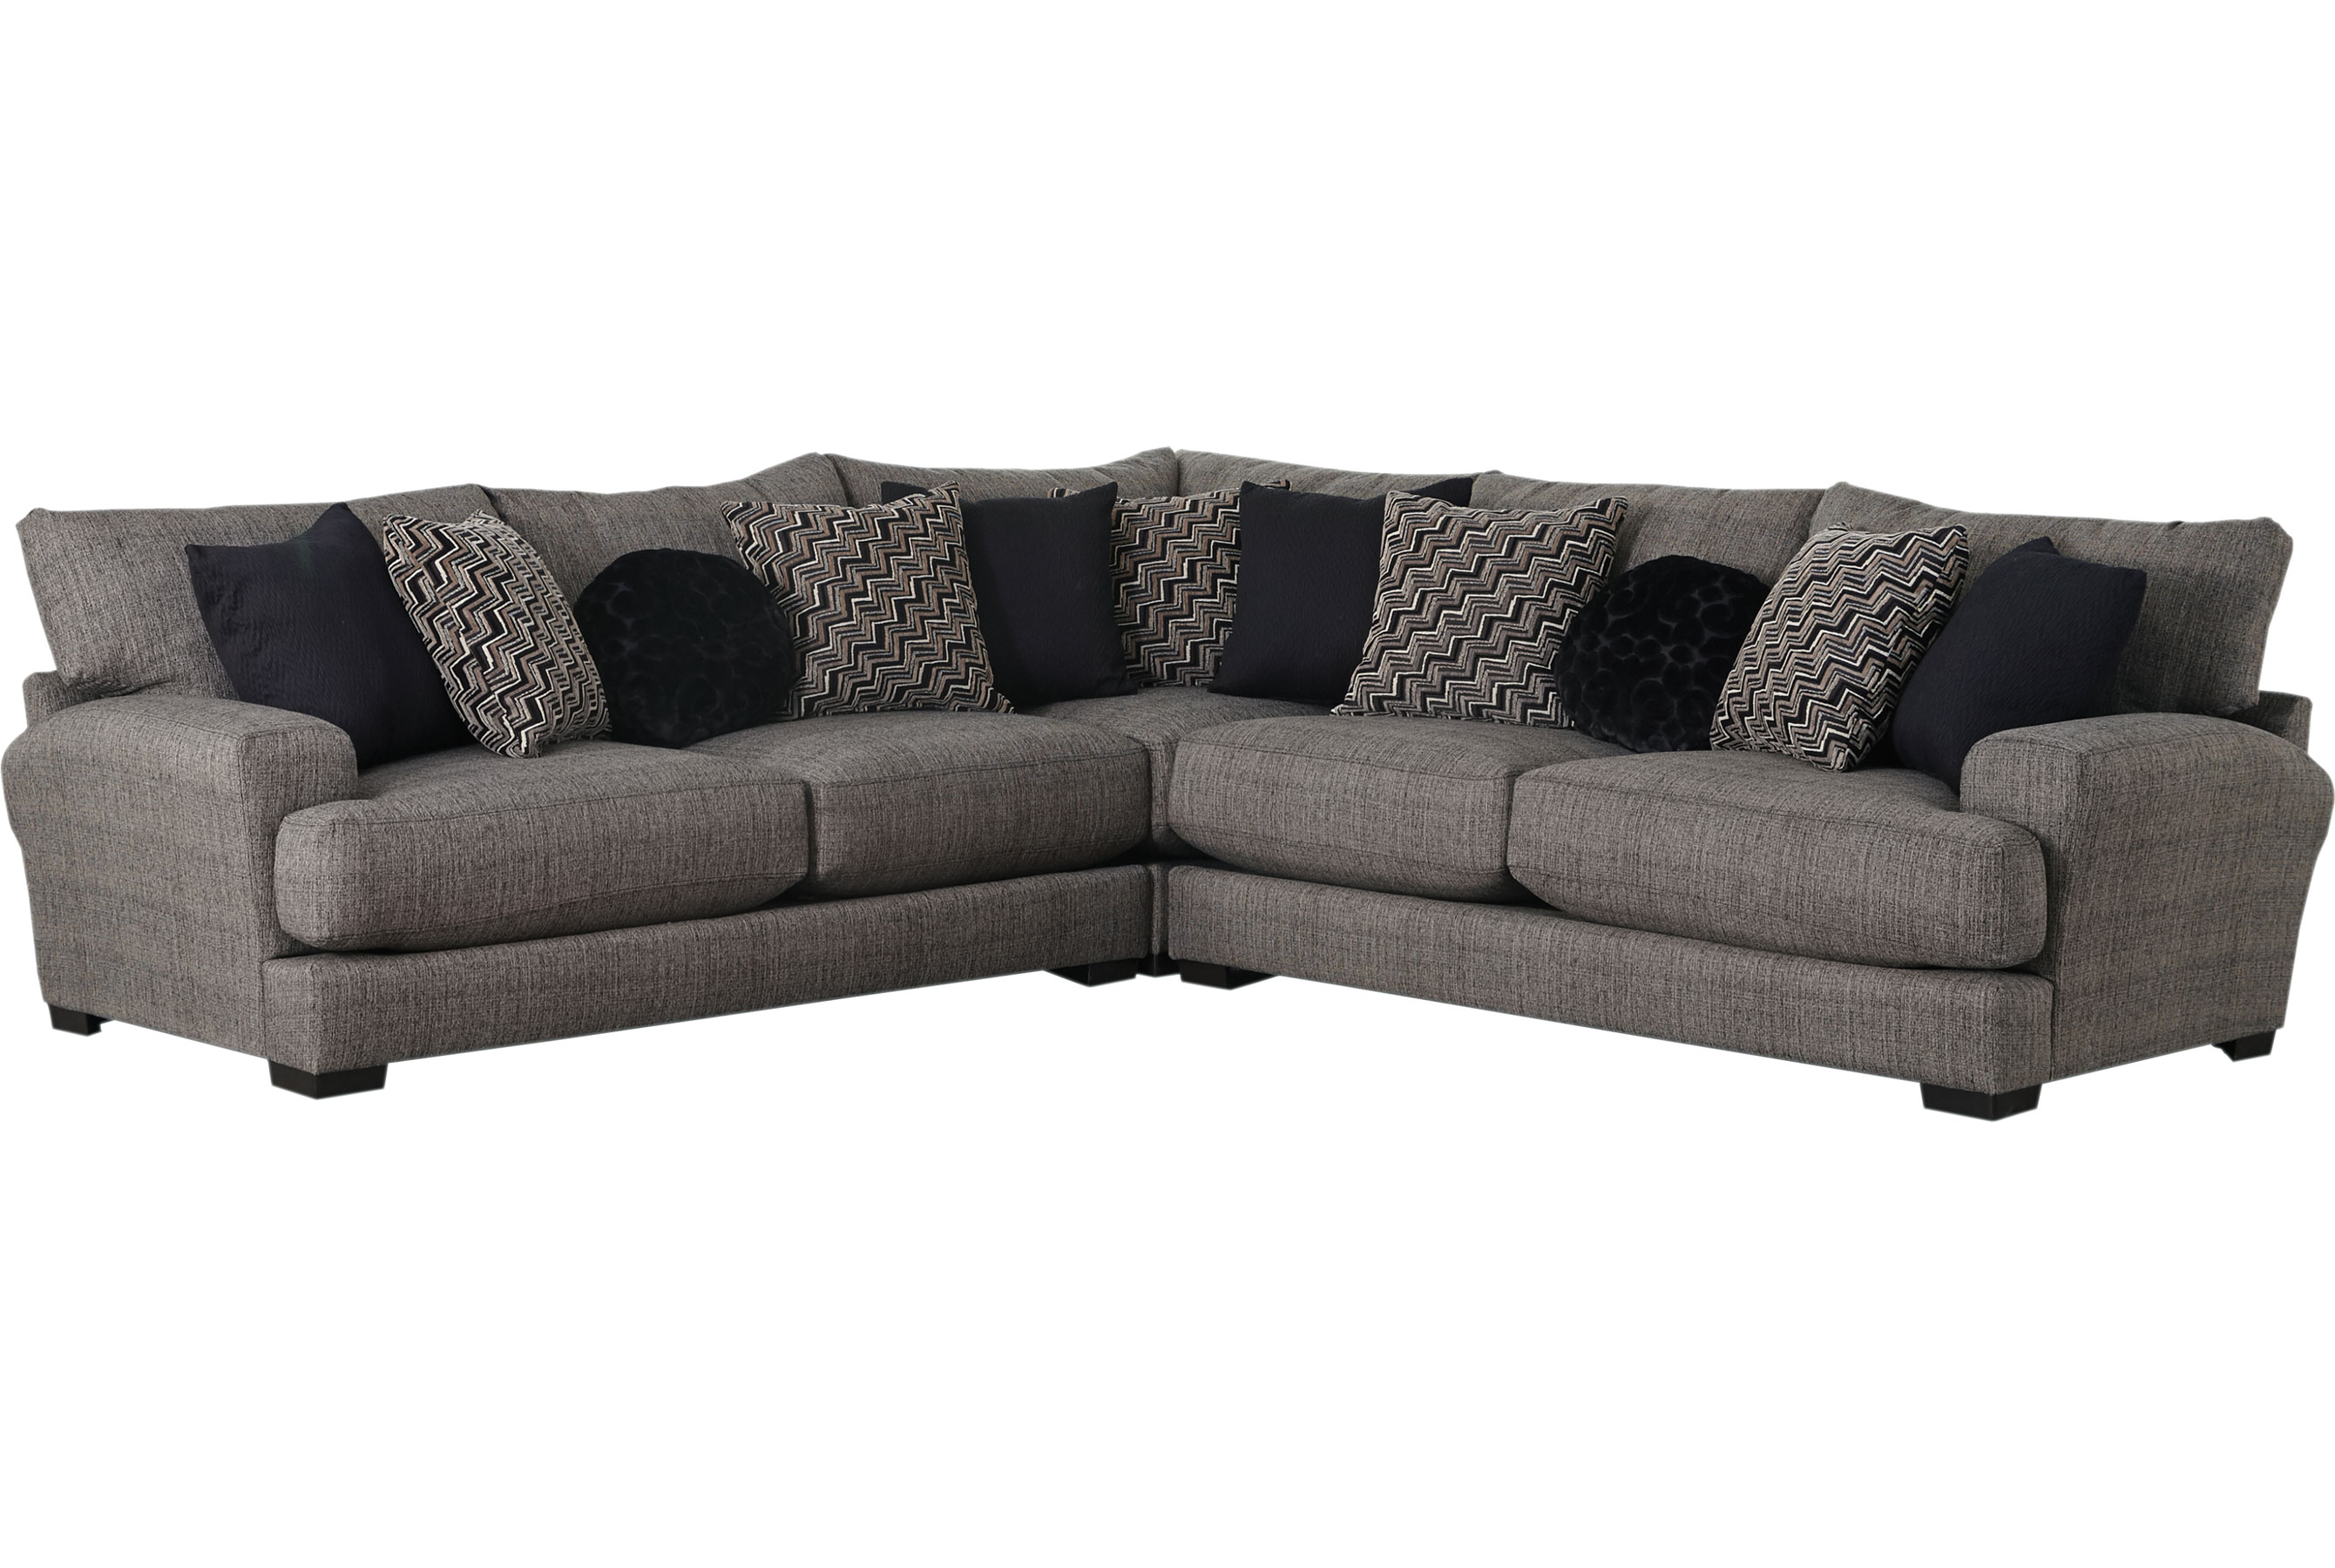 jackson suffolk sofa reviews slim two seater grant in steel 4453 03